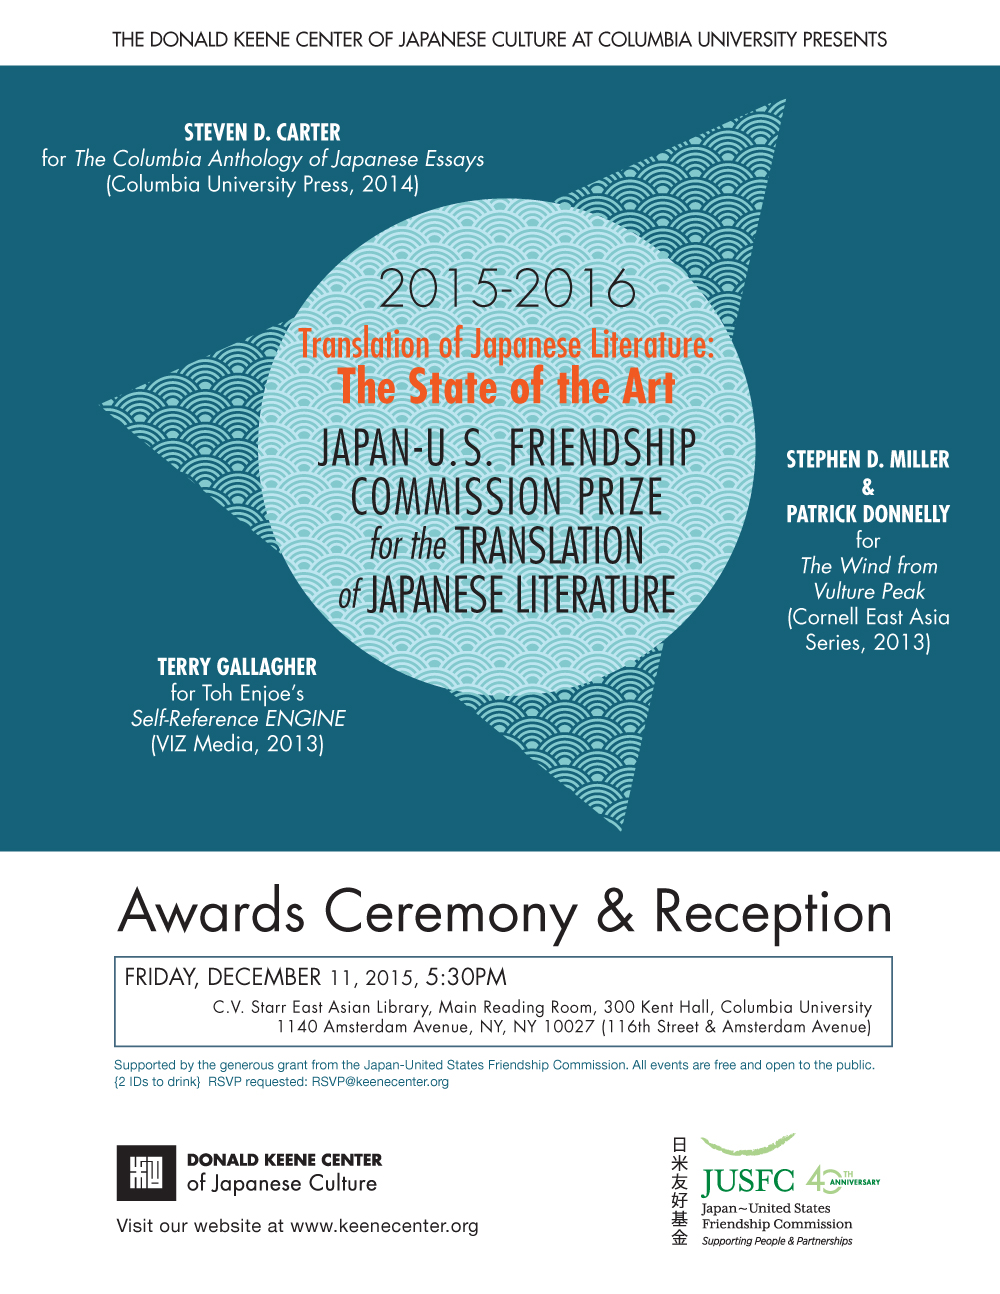 donald keene center of ese culture awards ceremony and reception for the 2015 2016 u s friendship commission prize for the translation of ese literature